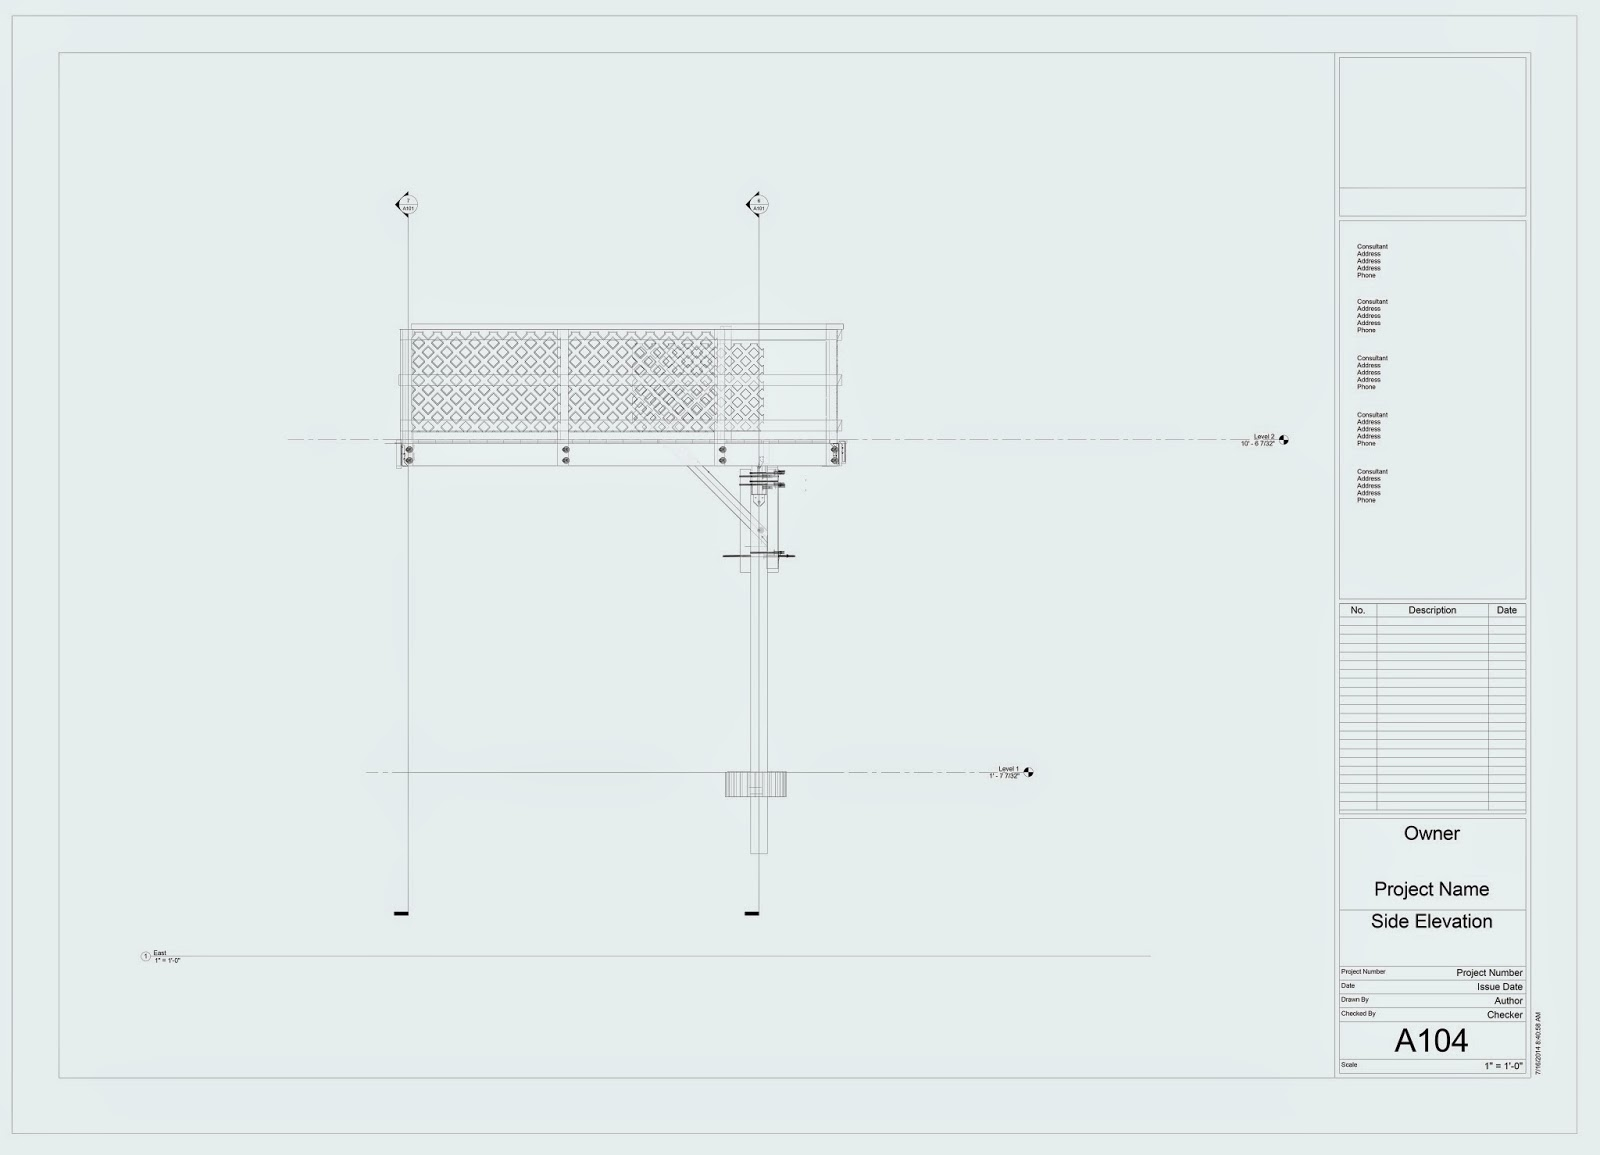 12x20 deck design samples ideas and project s for Sketchup deck design